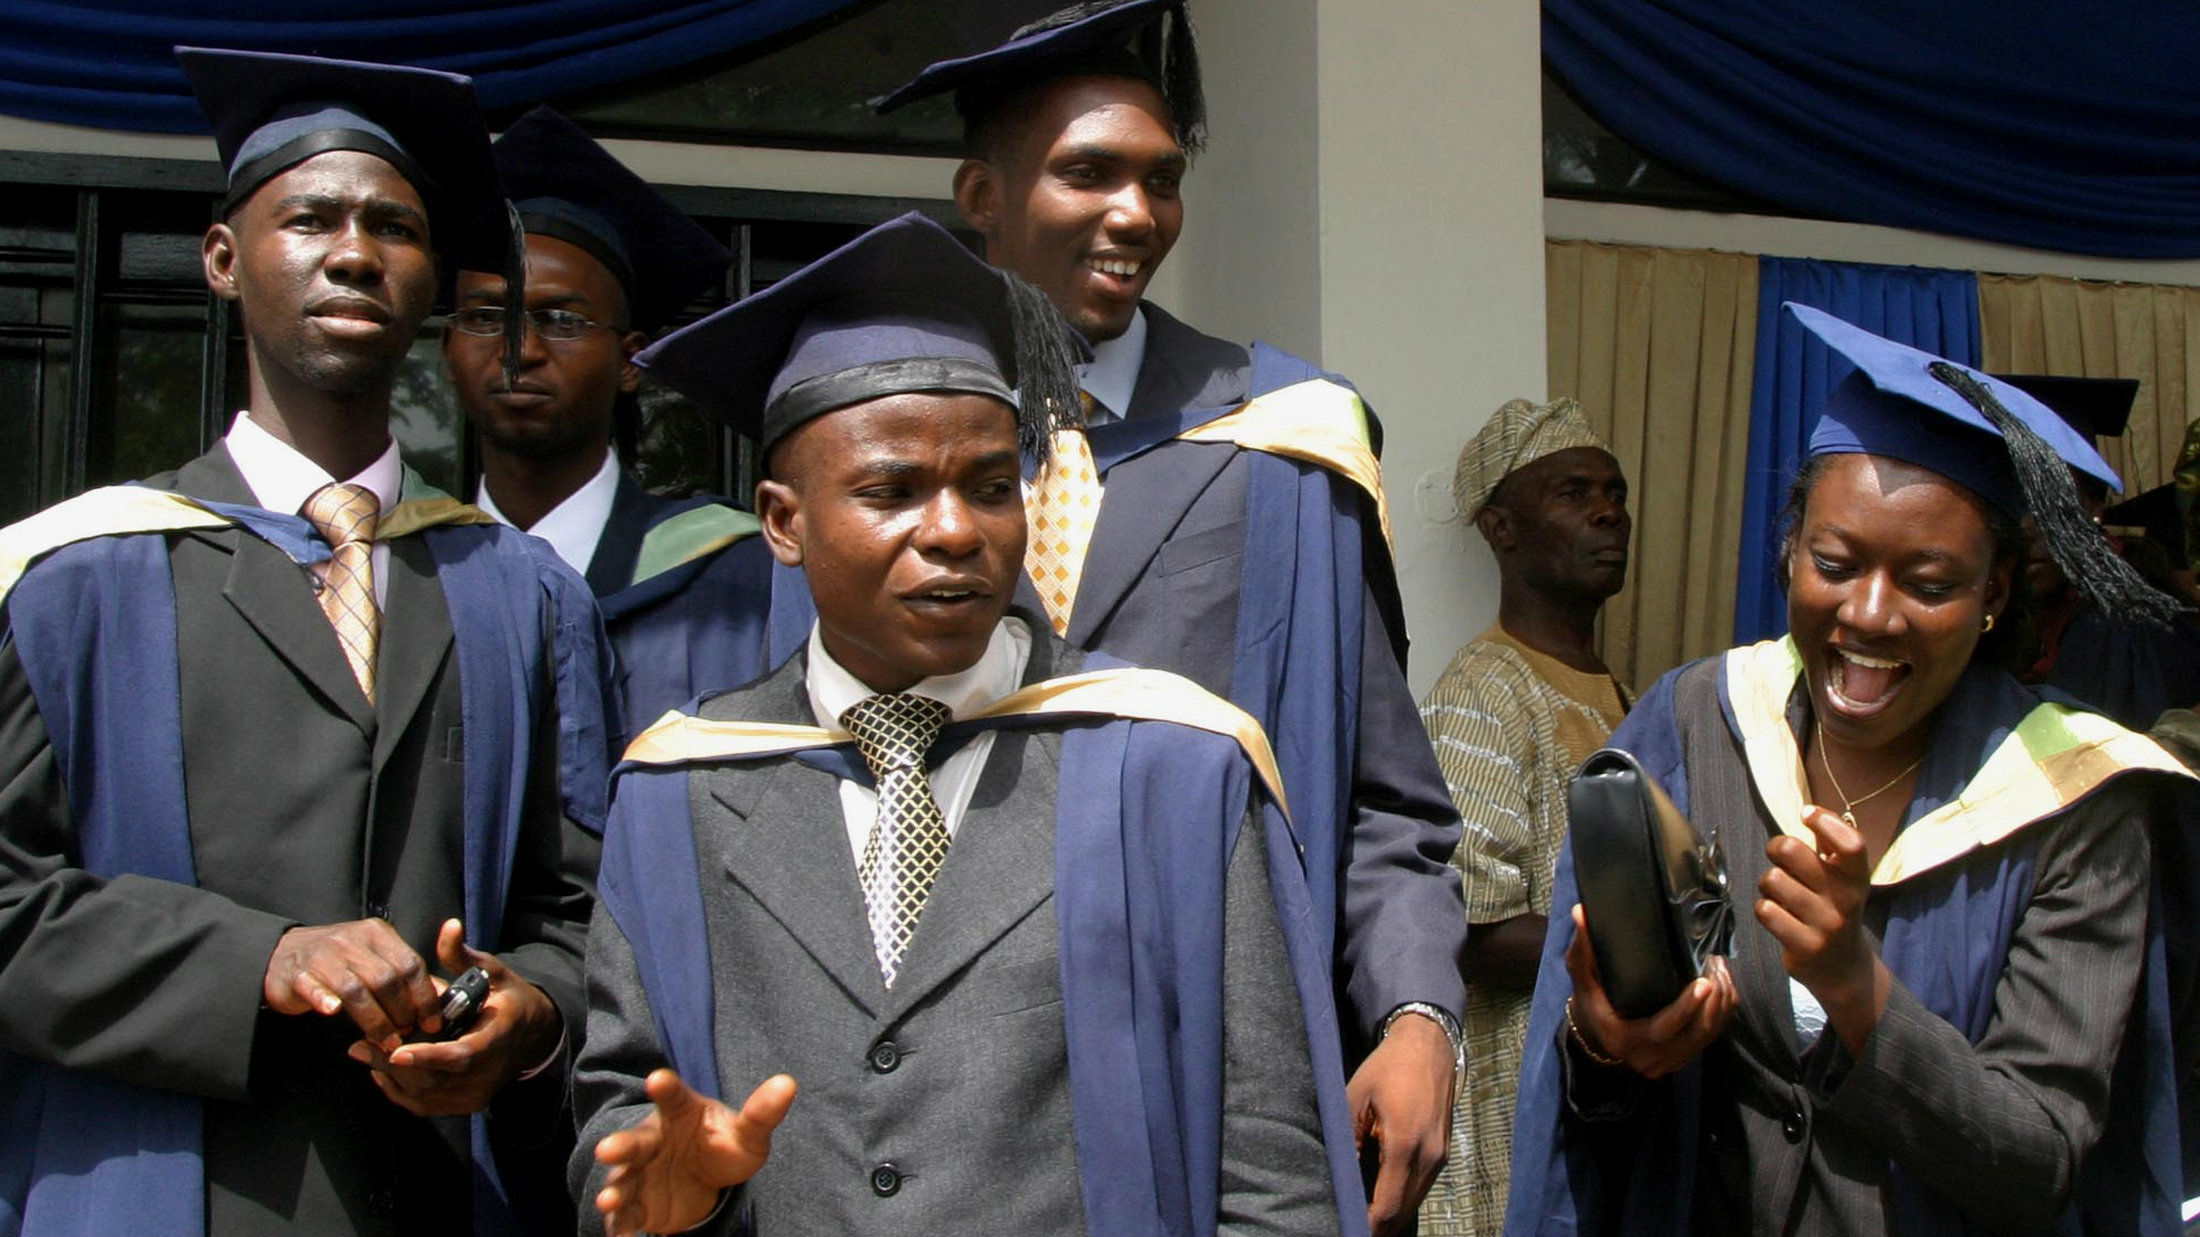 Students of the University of Ibadan check their graduation gowns in their campus in Ibadan, south west Nigeria, November 15, 2006